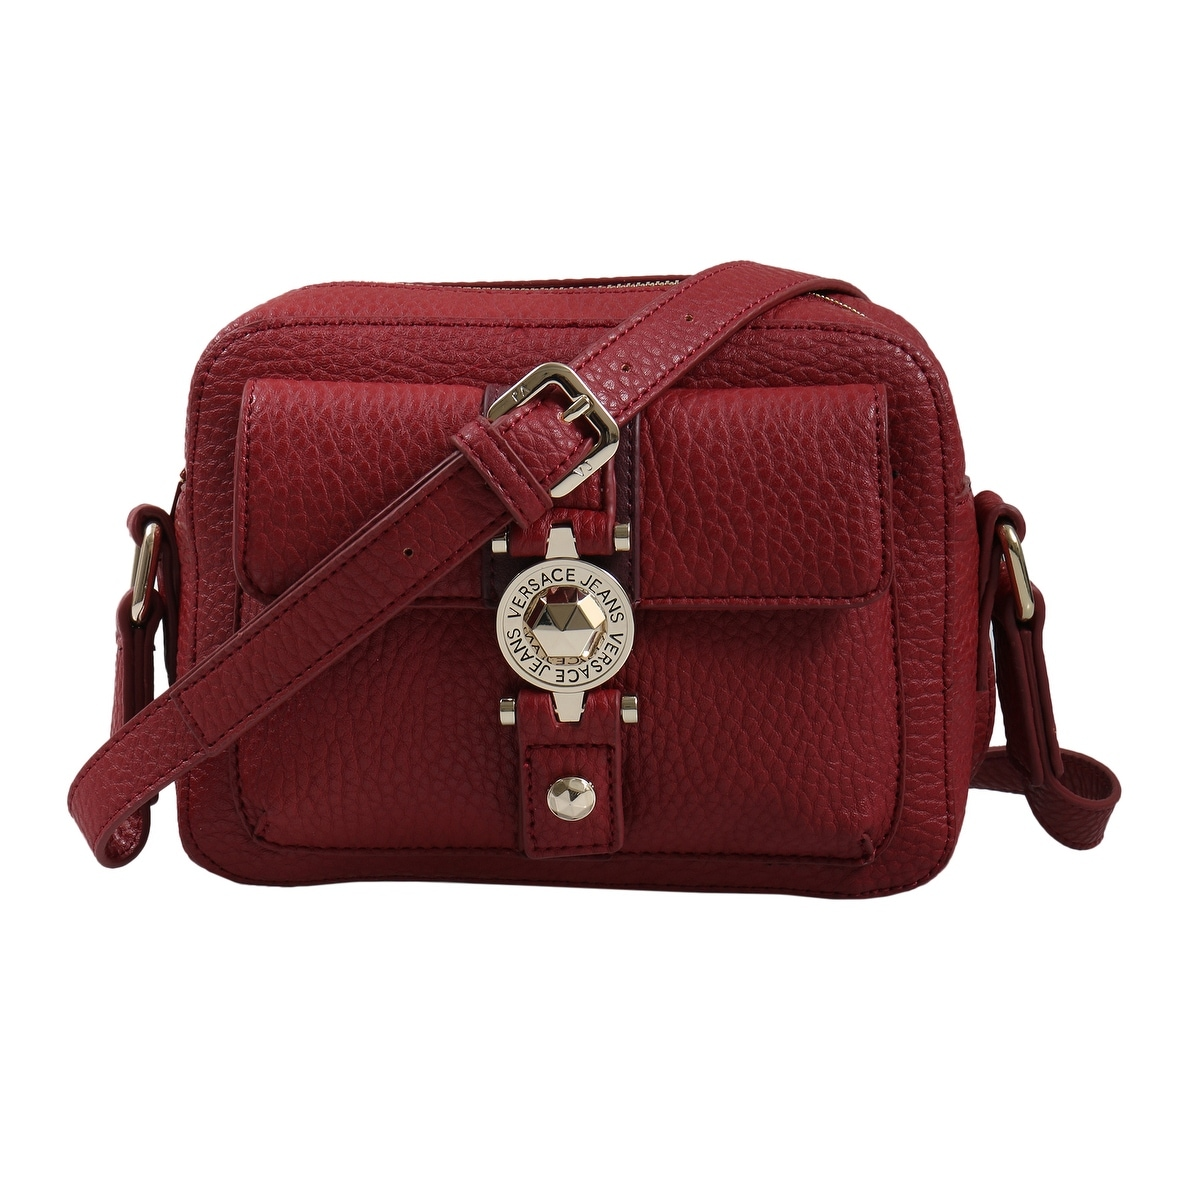 Shop Versace EE1VSBBF1 E331 Red Shoulder Bag - 8-6.25-2.75 - Free Shipping  Today - Overstock - 25601678 8ce2cb39208a7